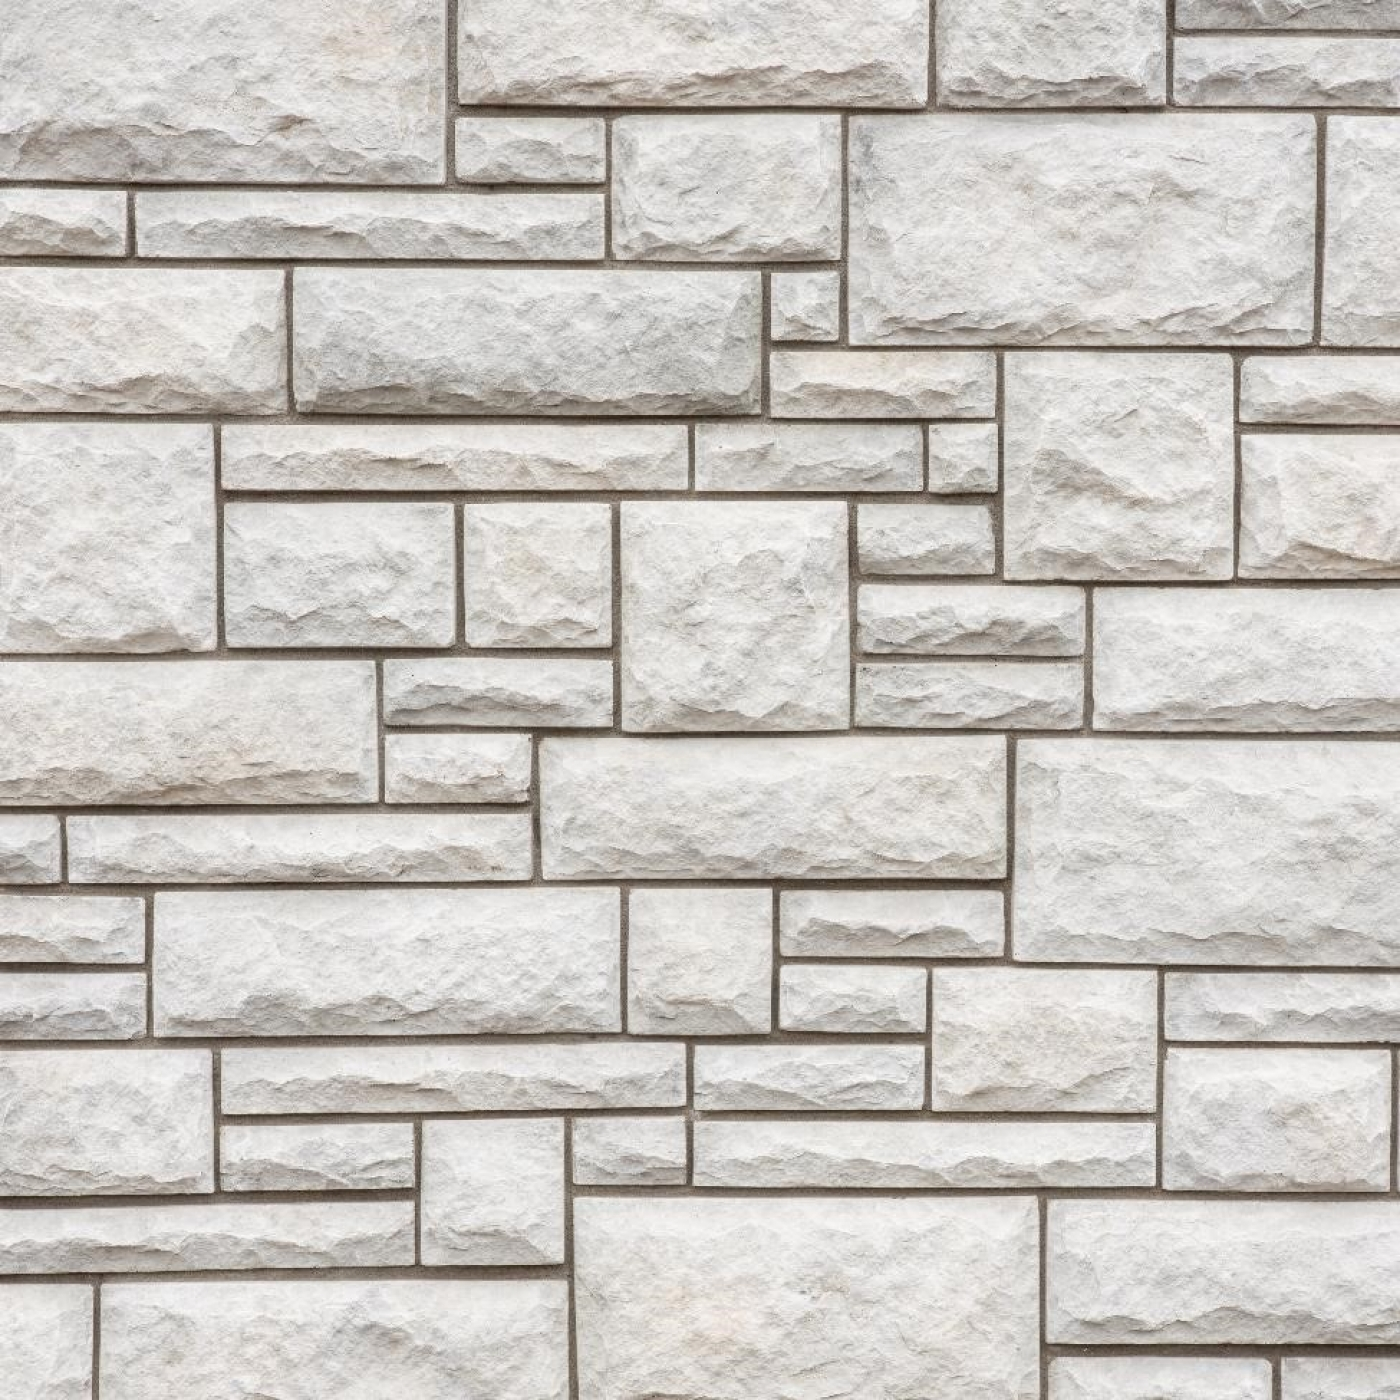 Osceola Castle Rock Cut Stone Stone Veneer from Environmental StoneWorks